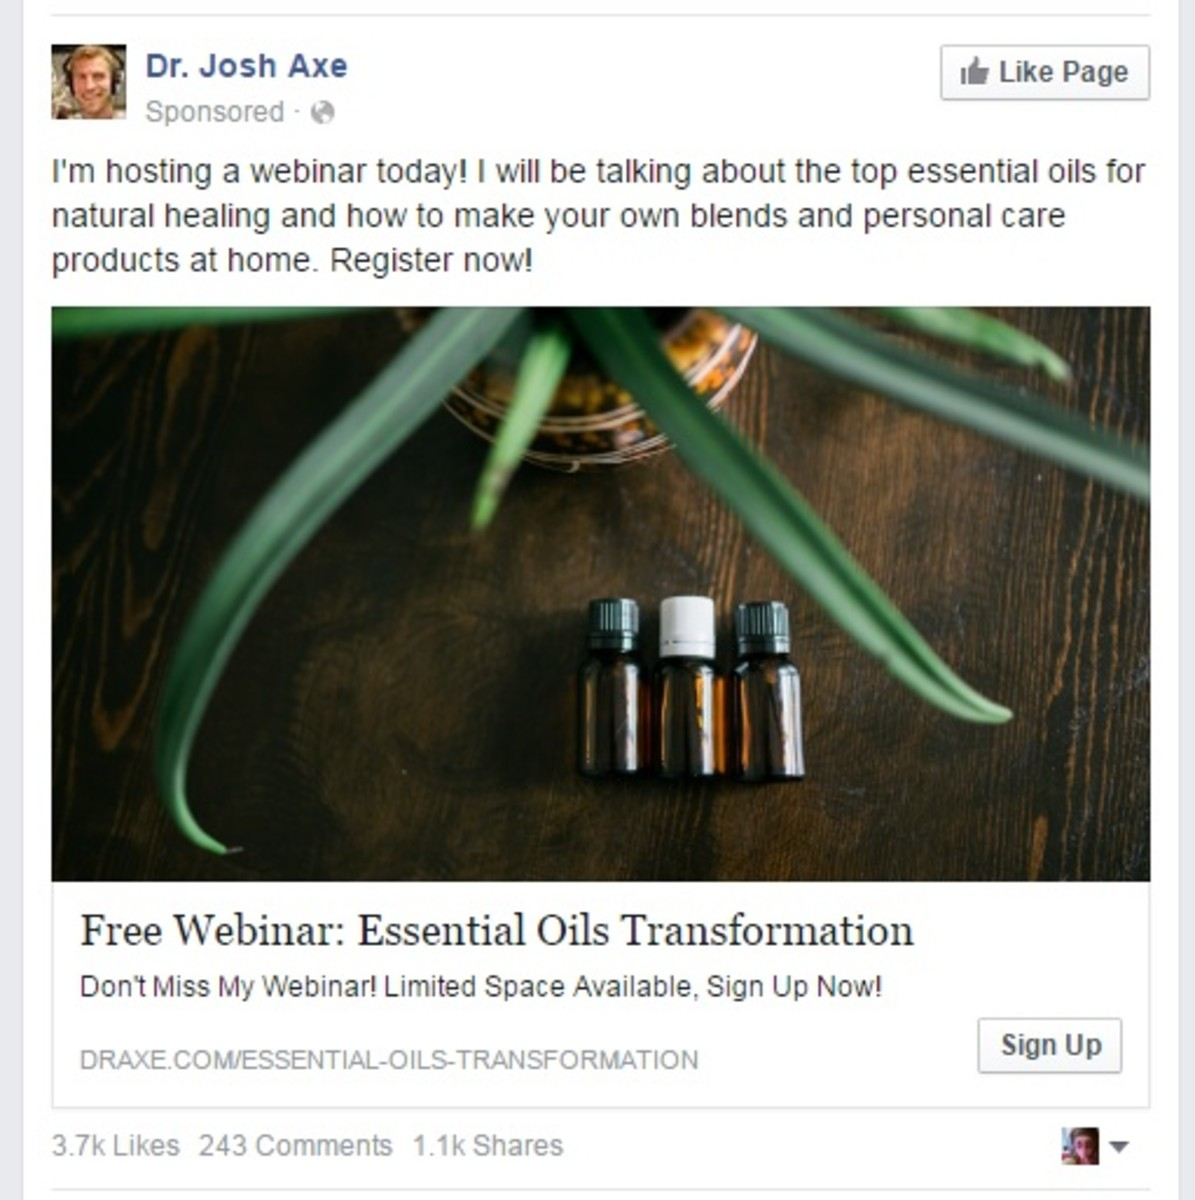 A Review of Dr. Axe's Essential Oil Webinar